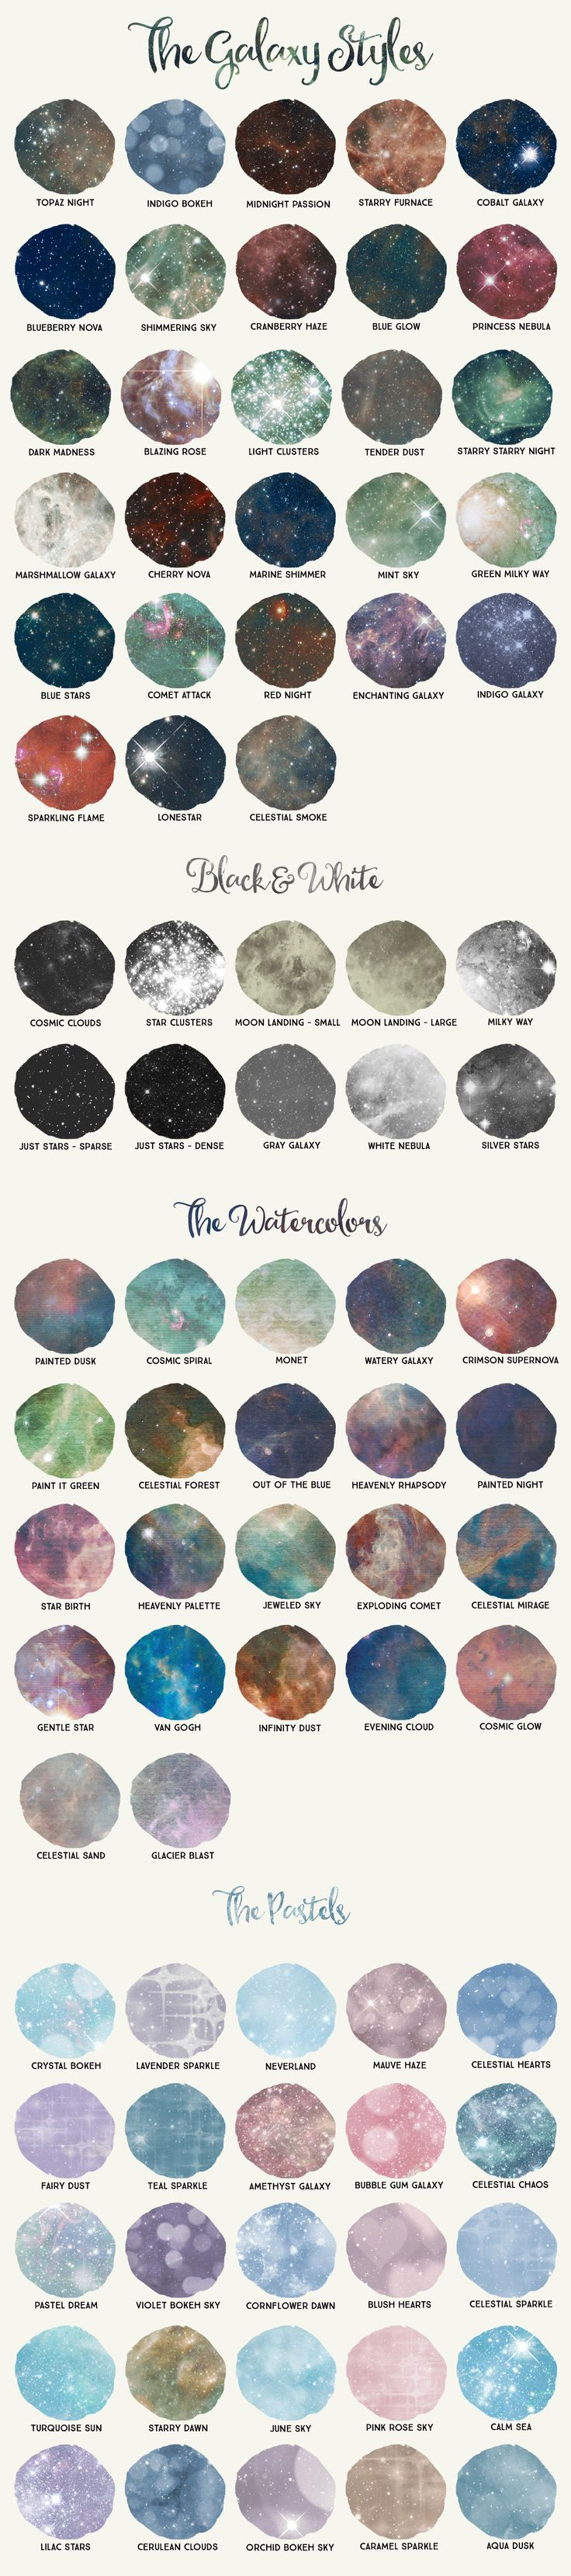 Galaxy Design Kit for Illustrator by Studio Denmark on Creative Market